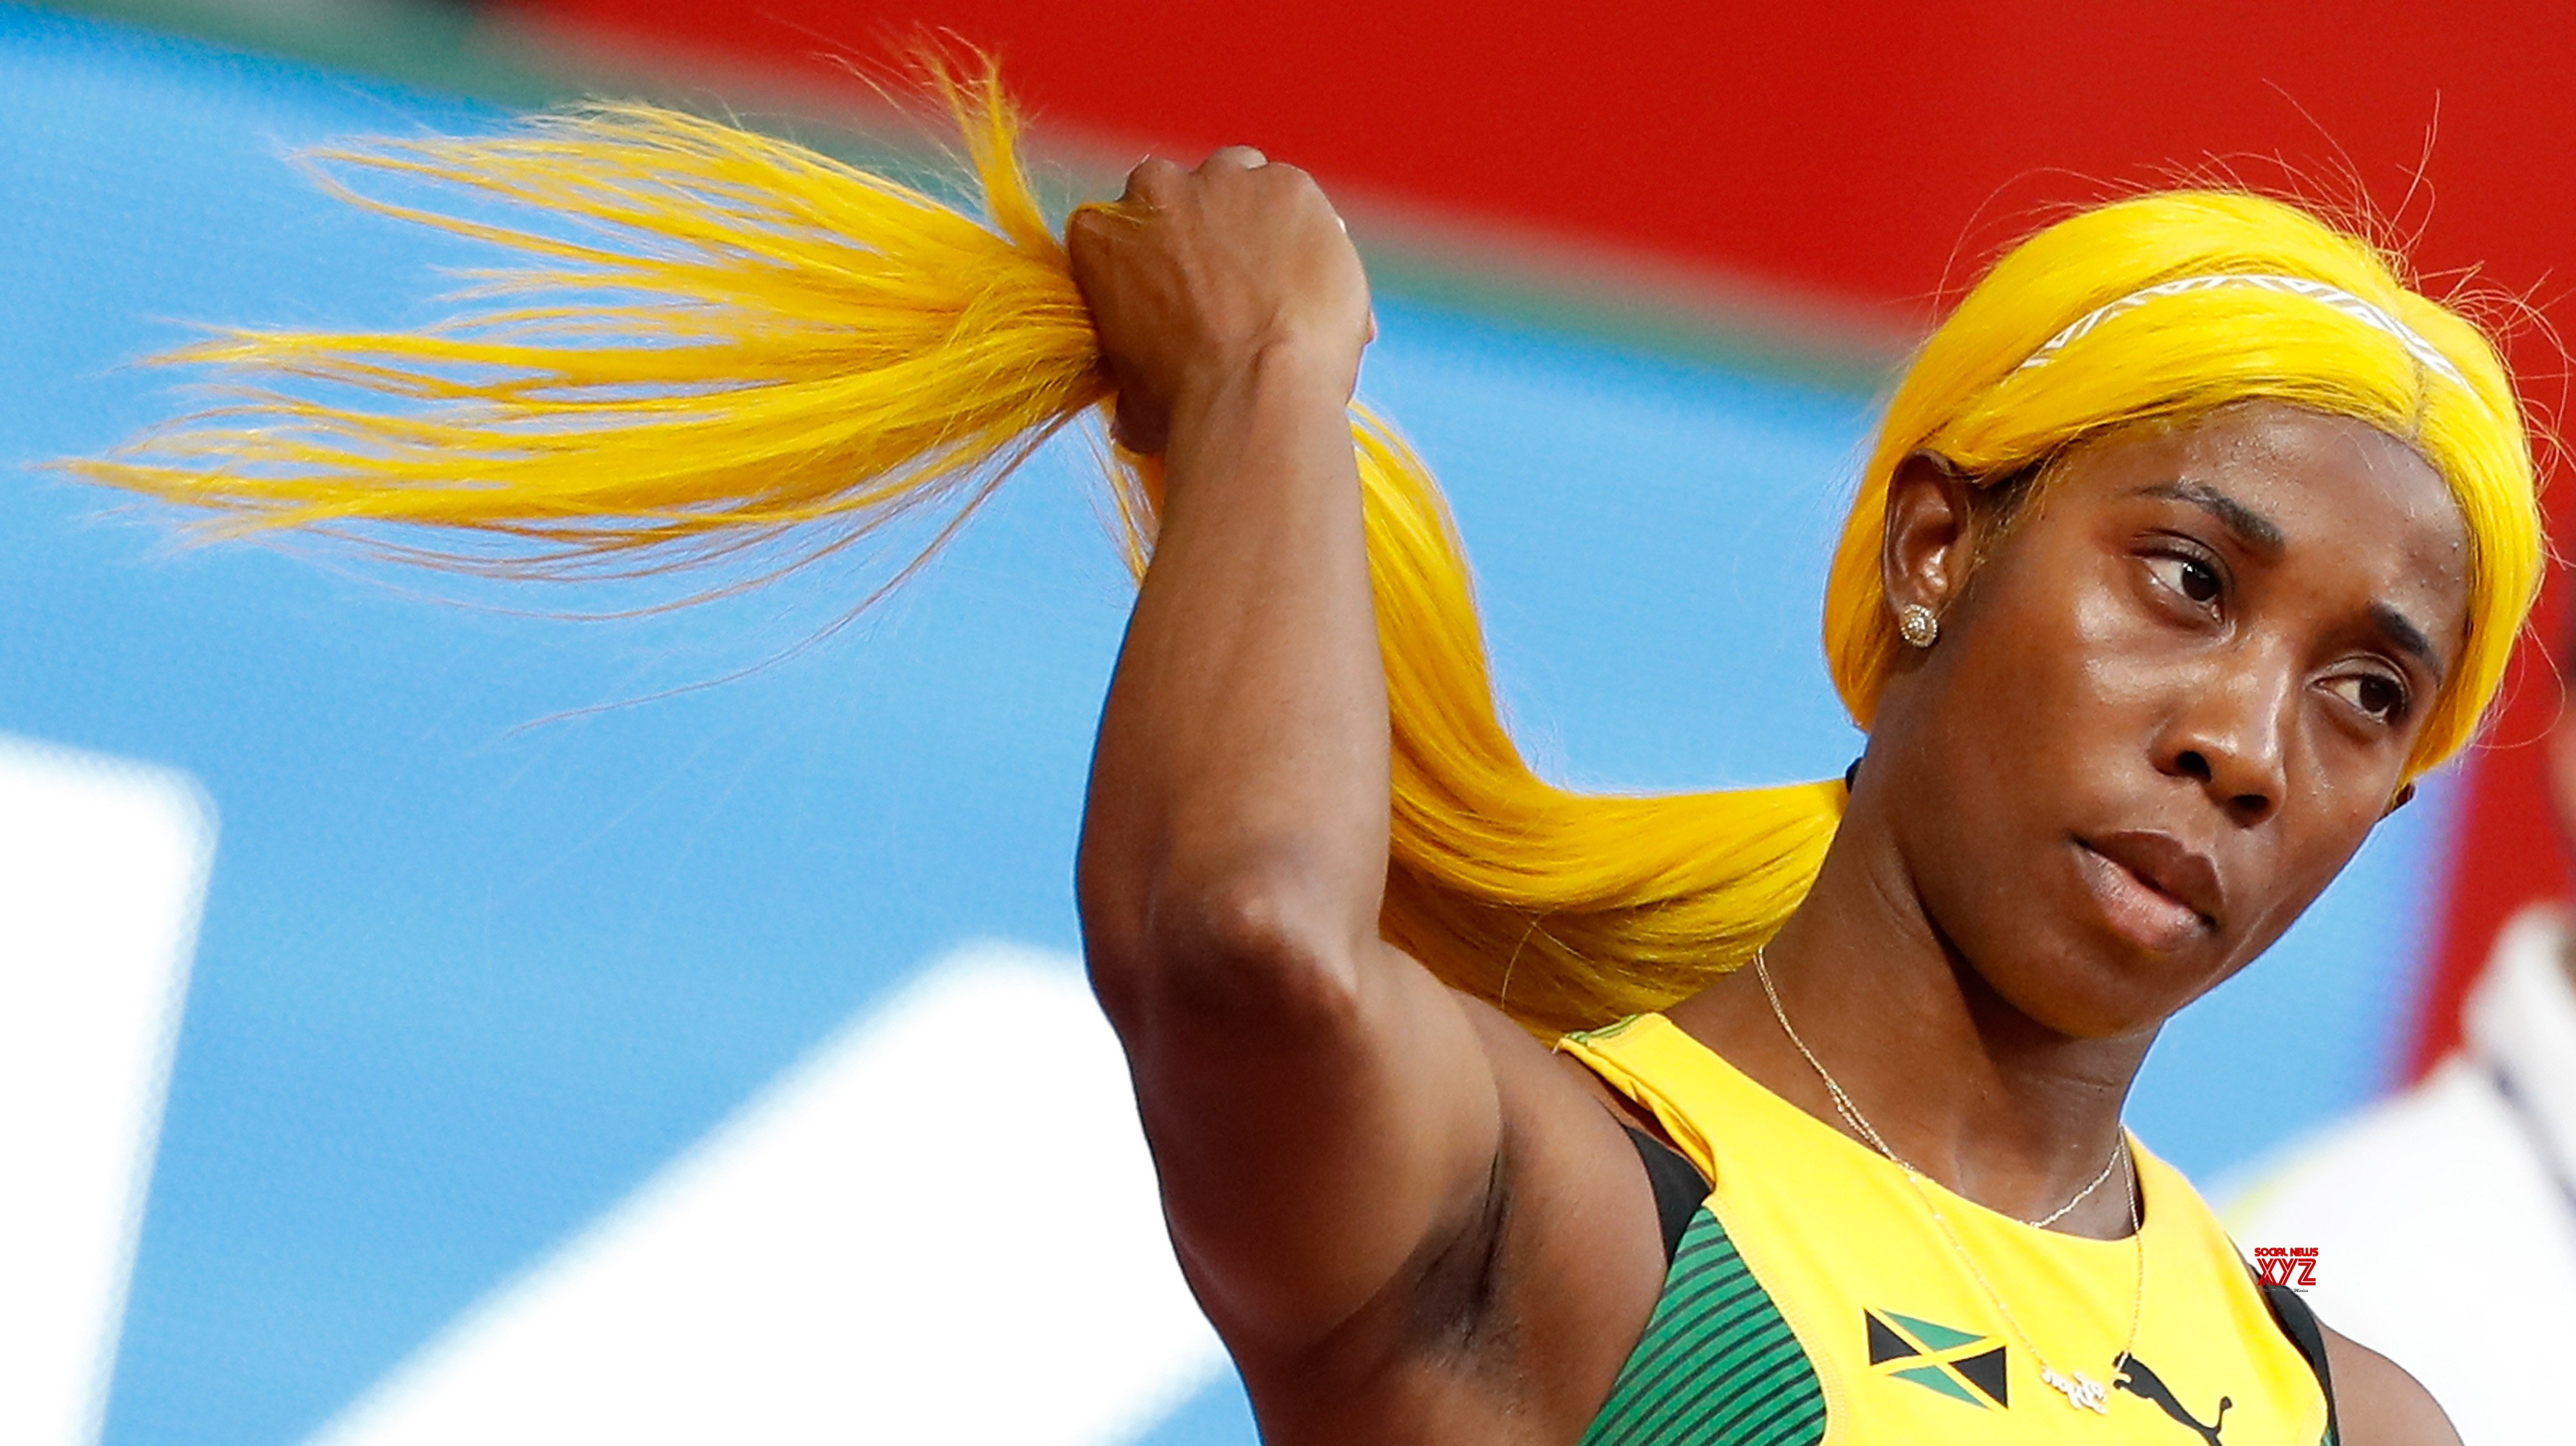 Fraser-Pryce wins 4th 100m Worlds title